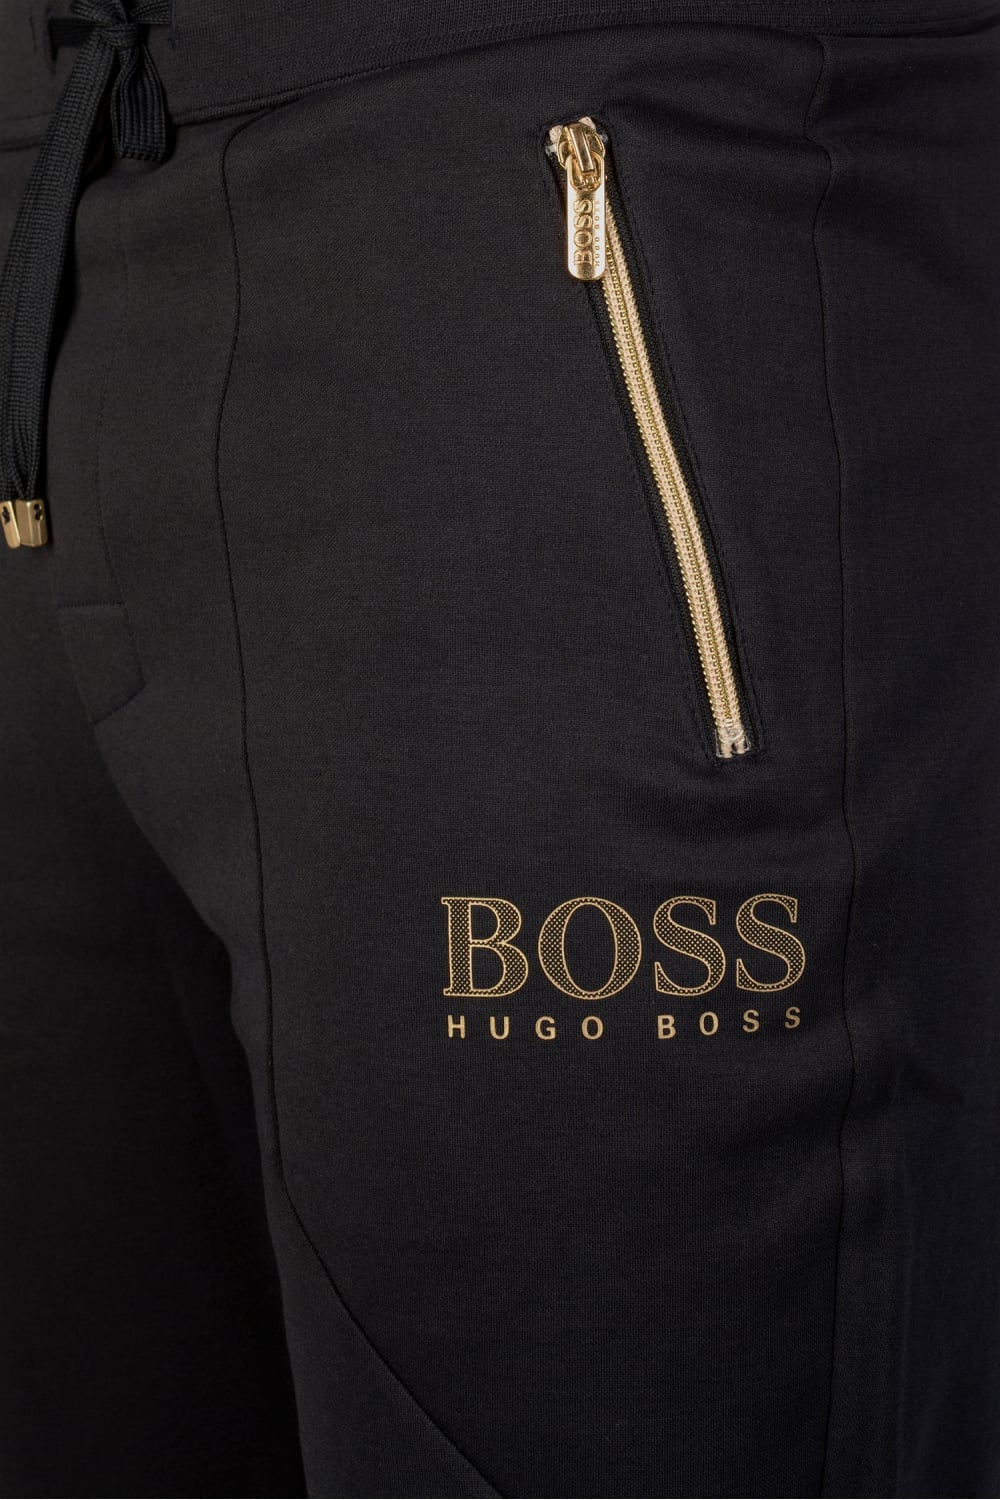 a0a42218 Hugo Boss Tracksuit Pants Navy & Gold